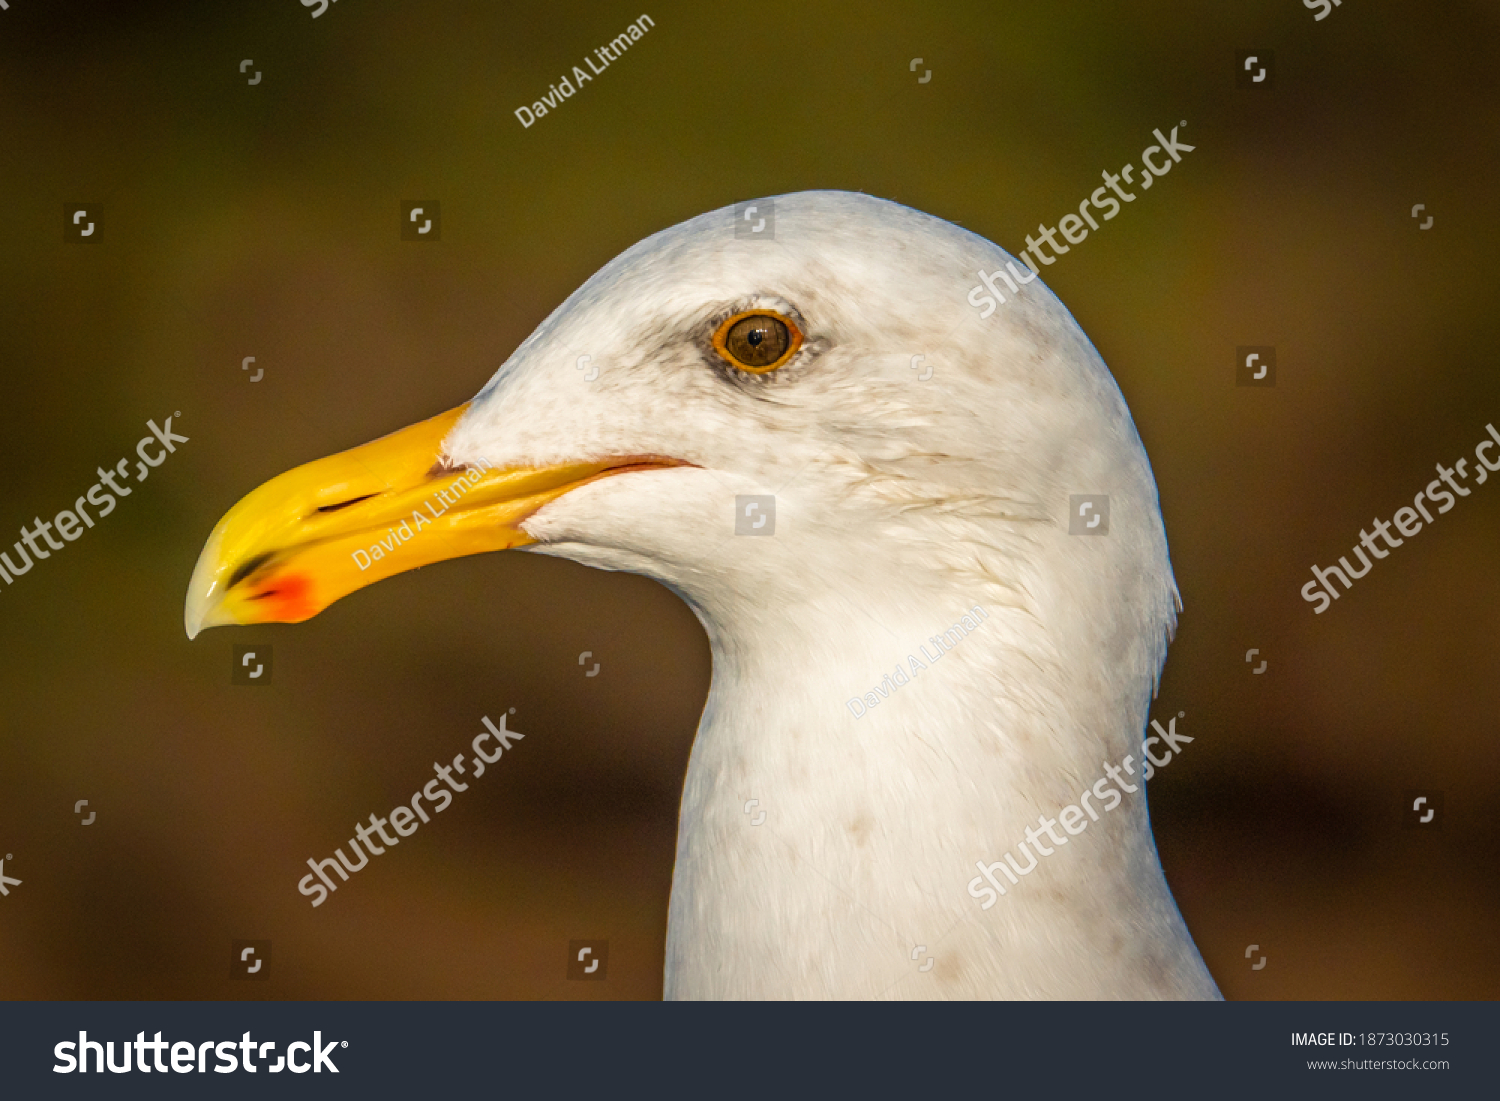 stock-photo-close-up-portrait-of-a-seagull-western-gull-larus-occidentalis-perched-on-a-rail-along-tomales-1873030315.jpg